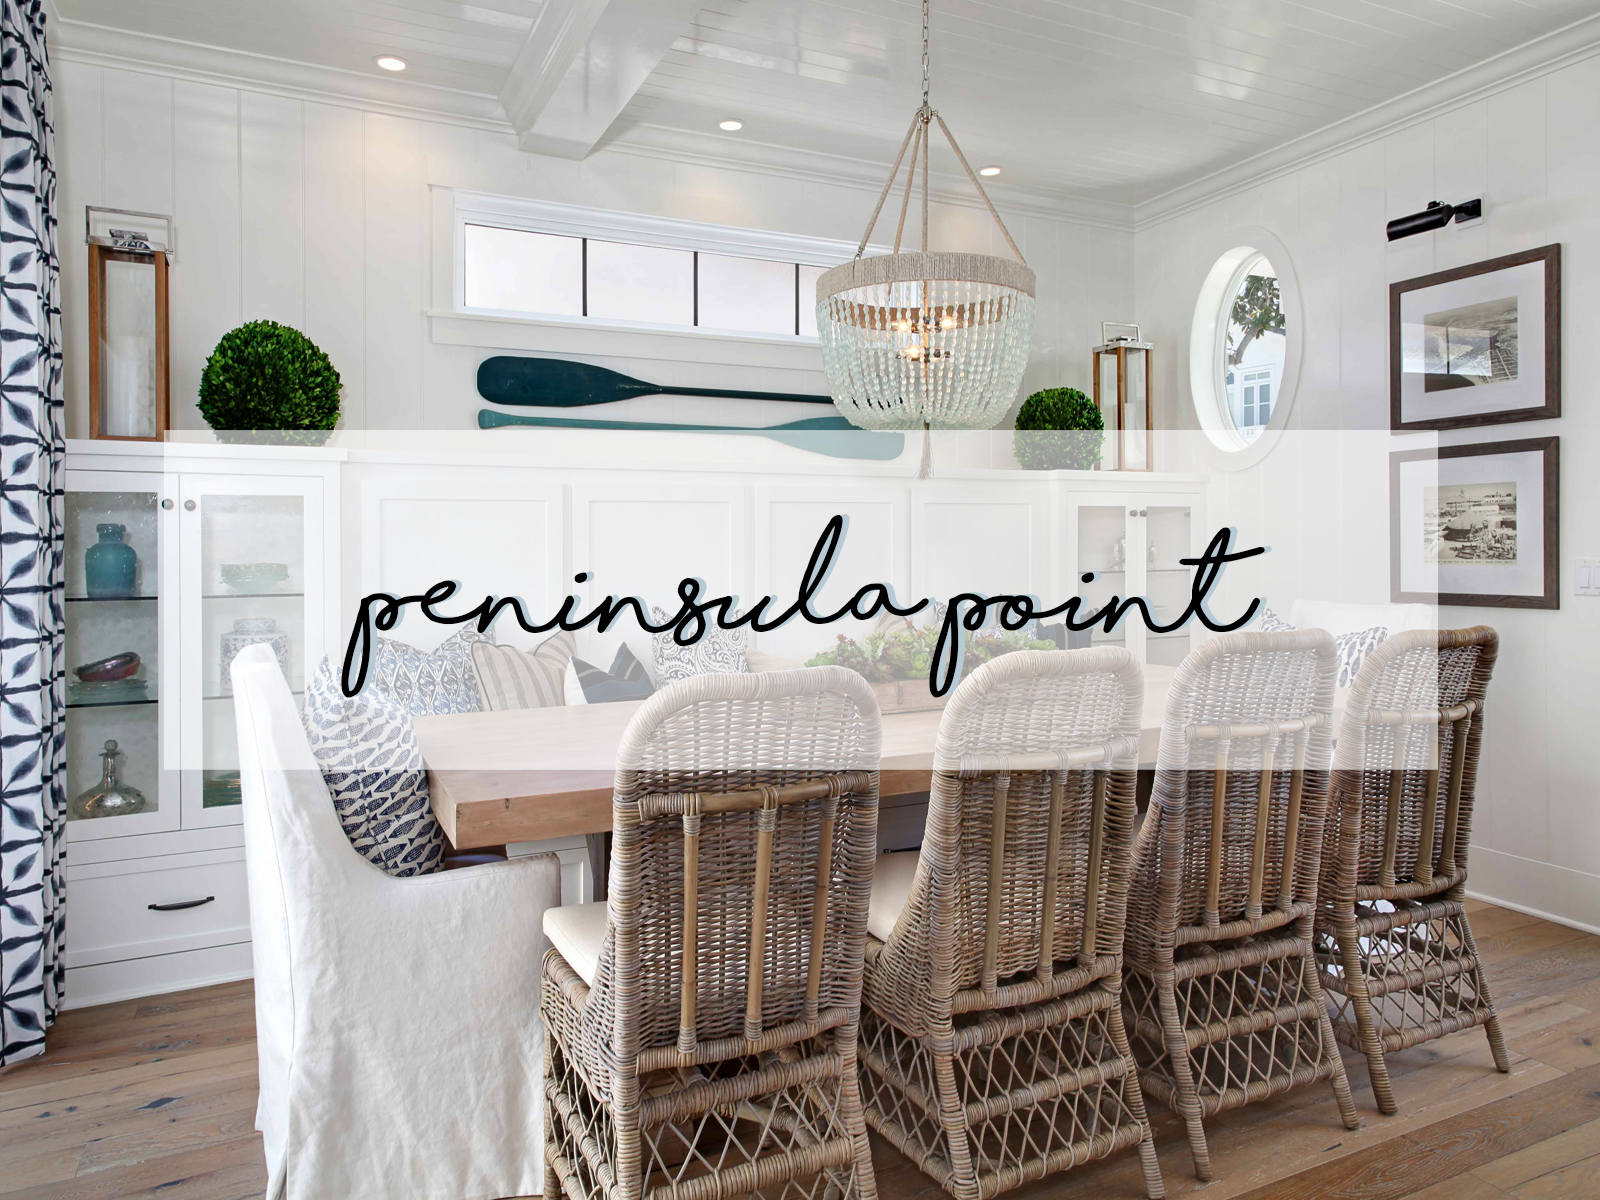 blackband_design_peninsula_point-1